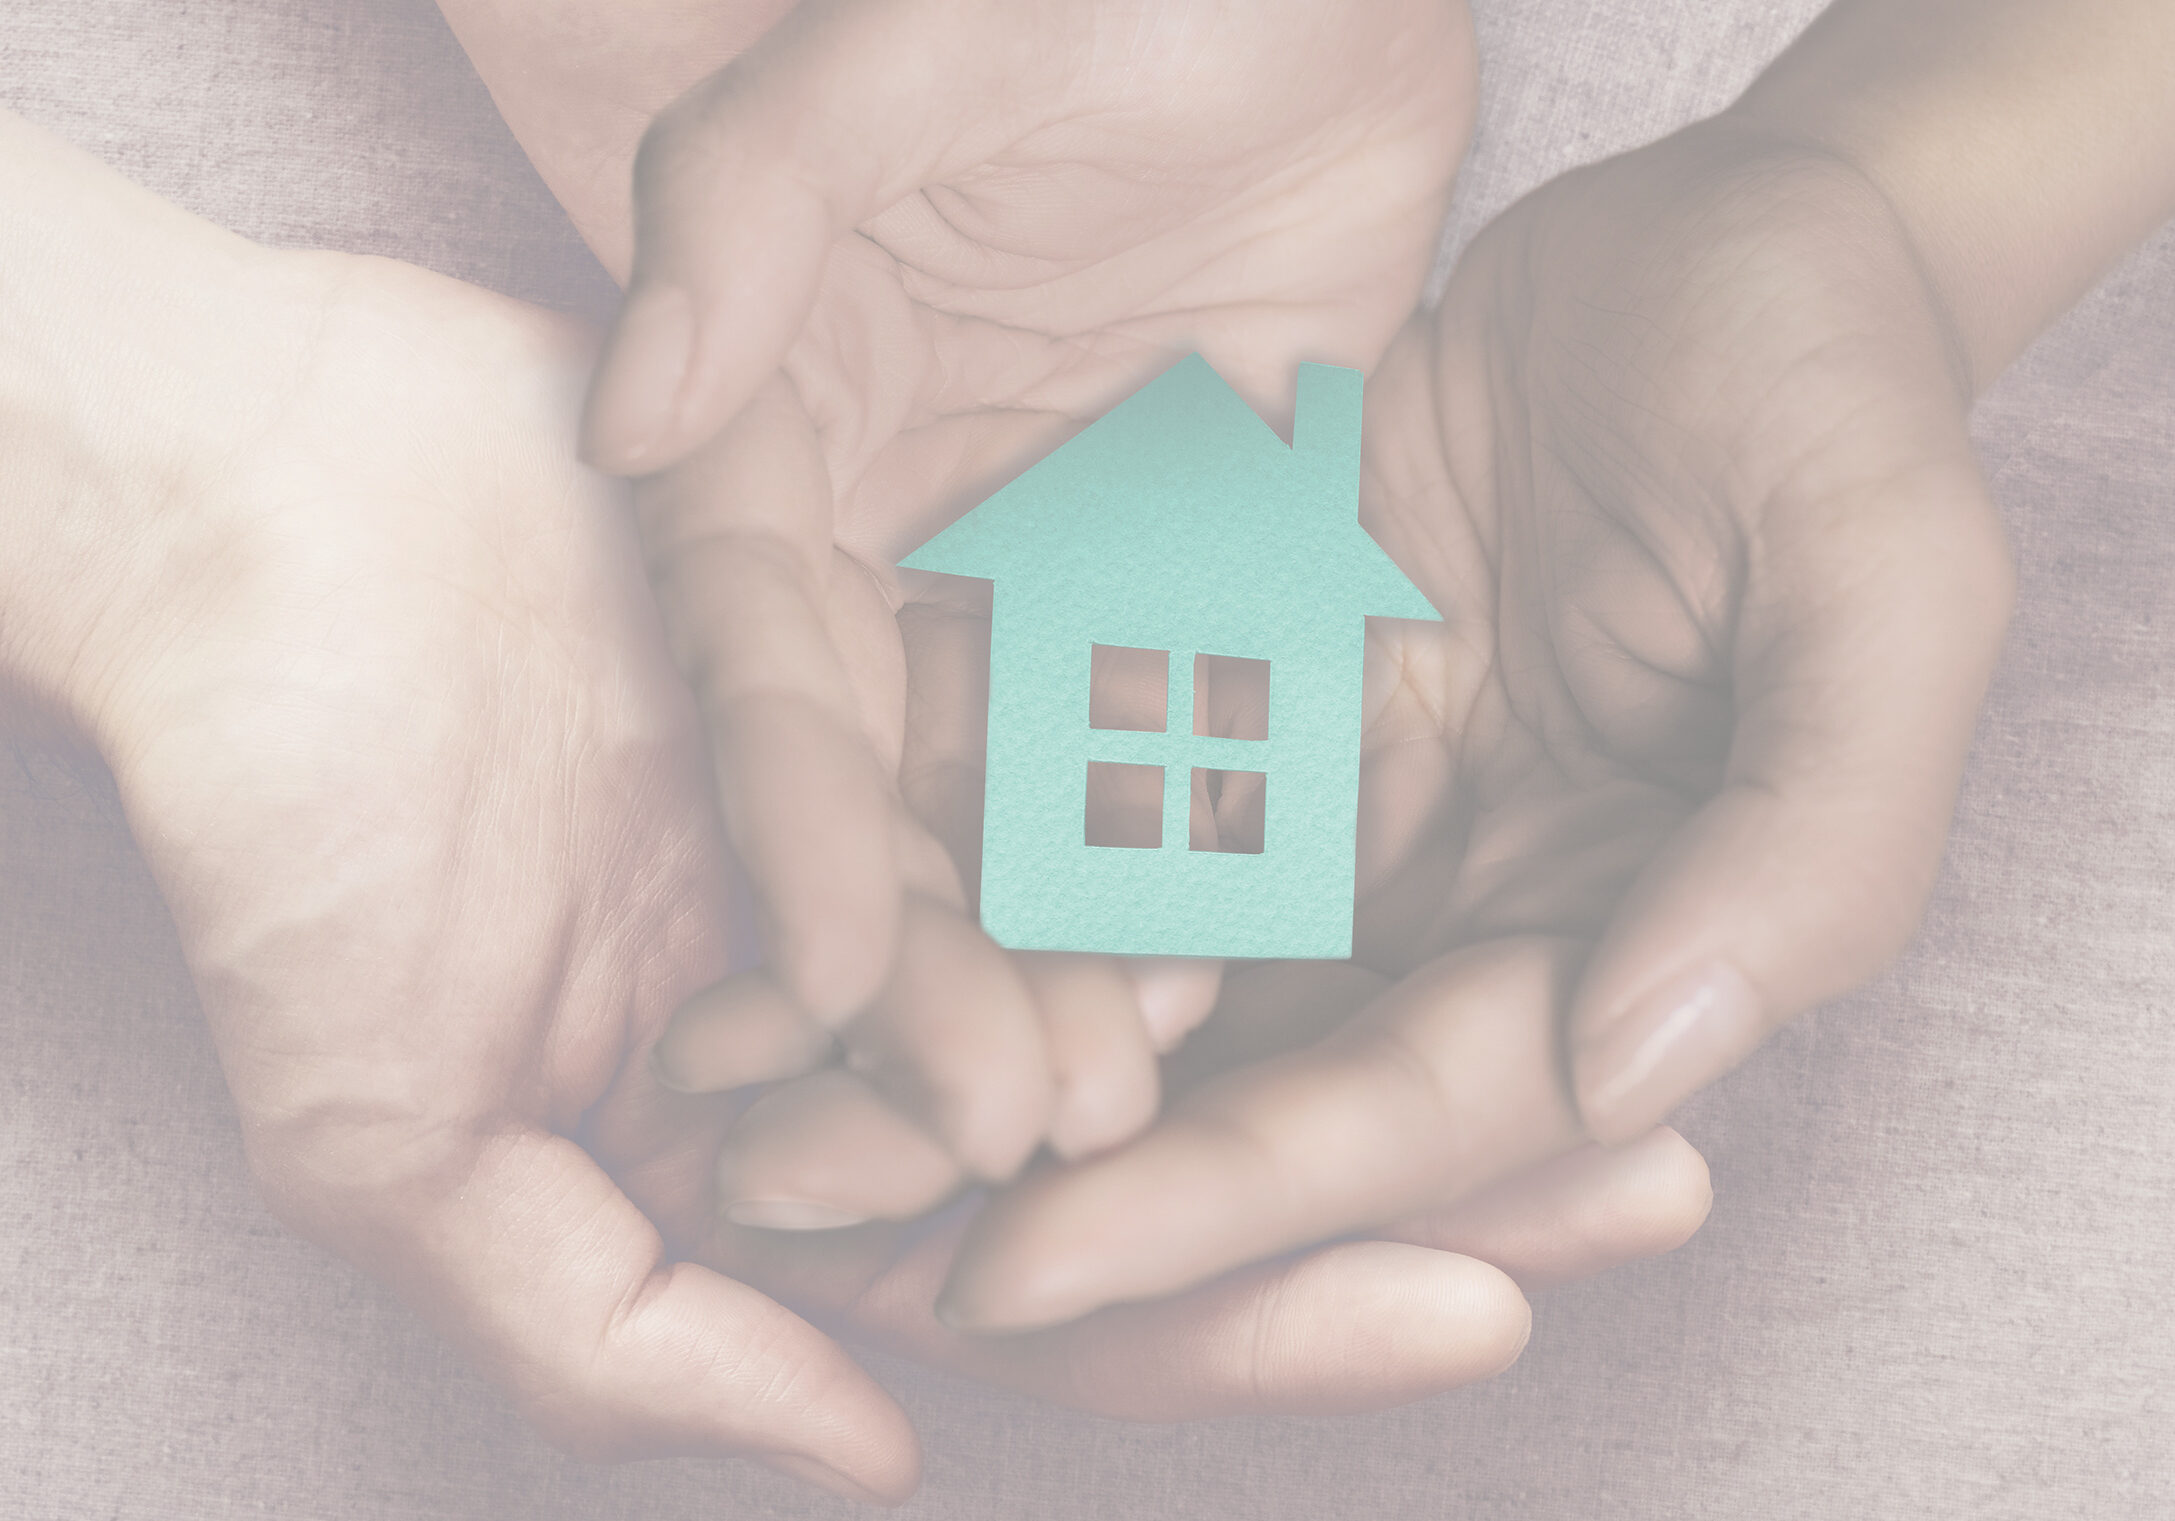 Adult and child hands holding paper house, family home and homeless shelter concept